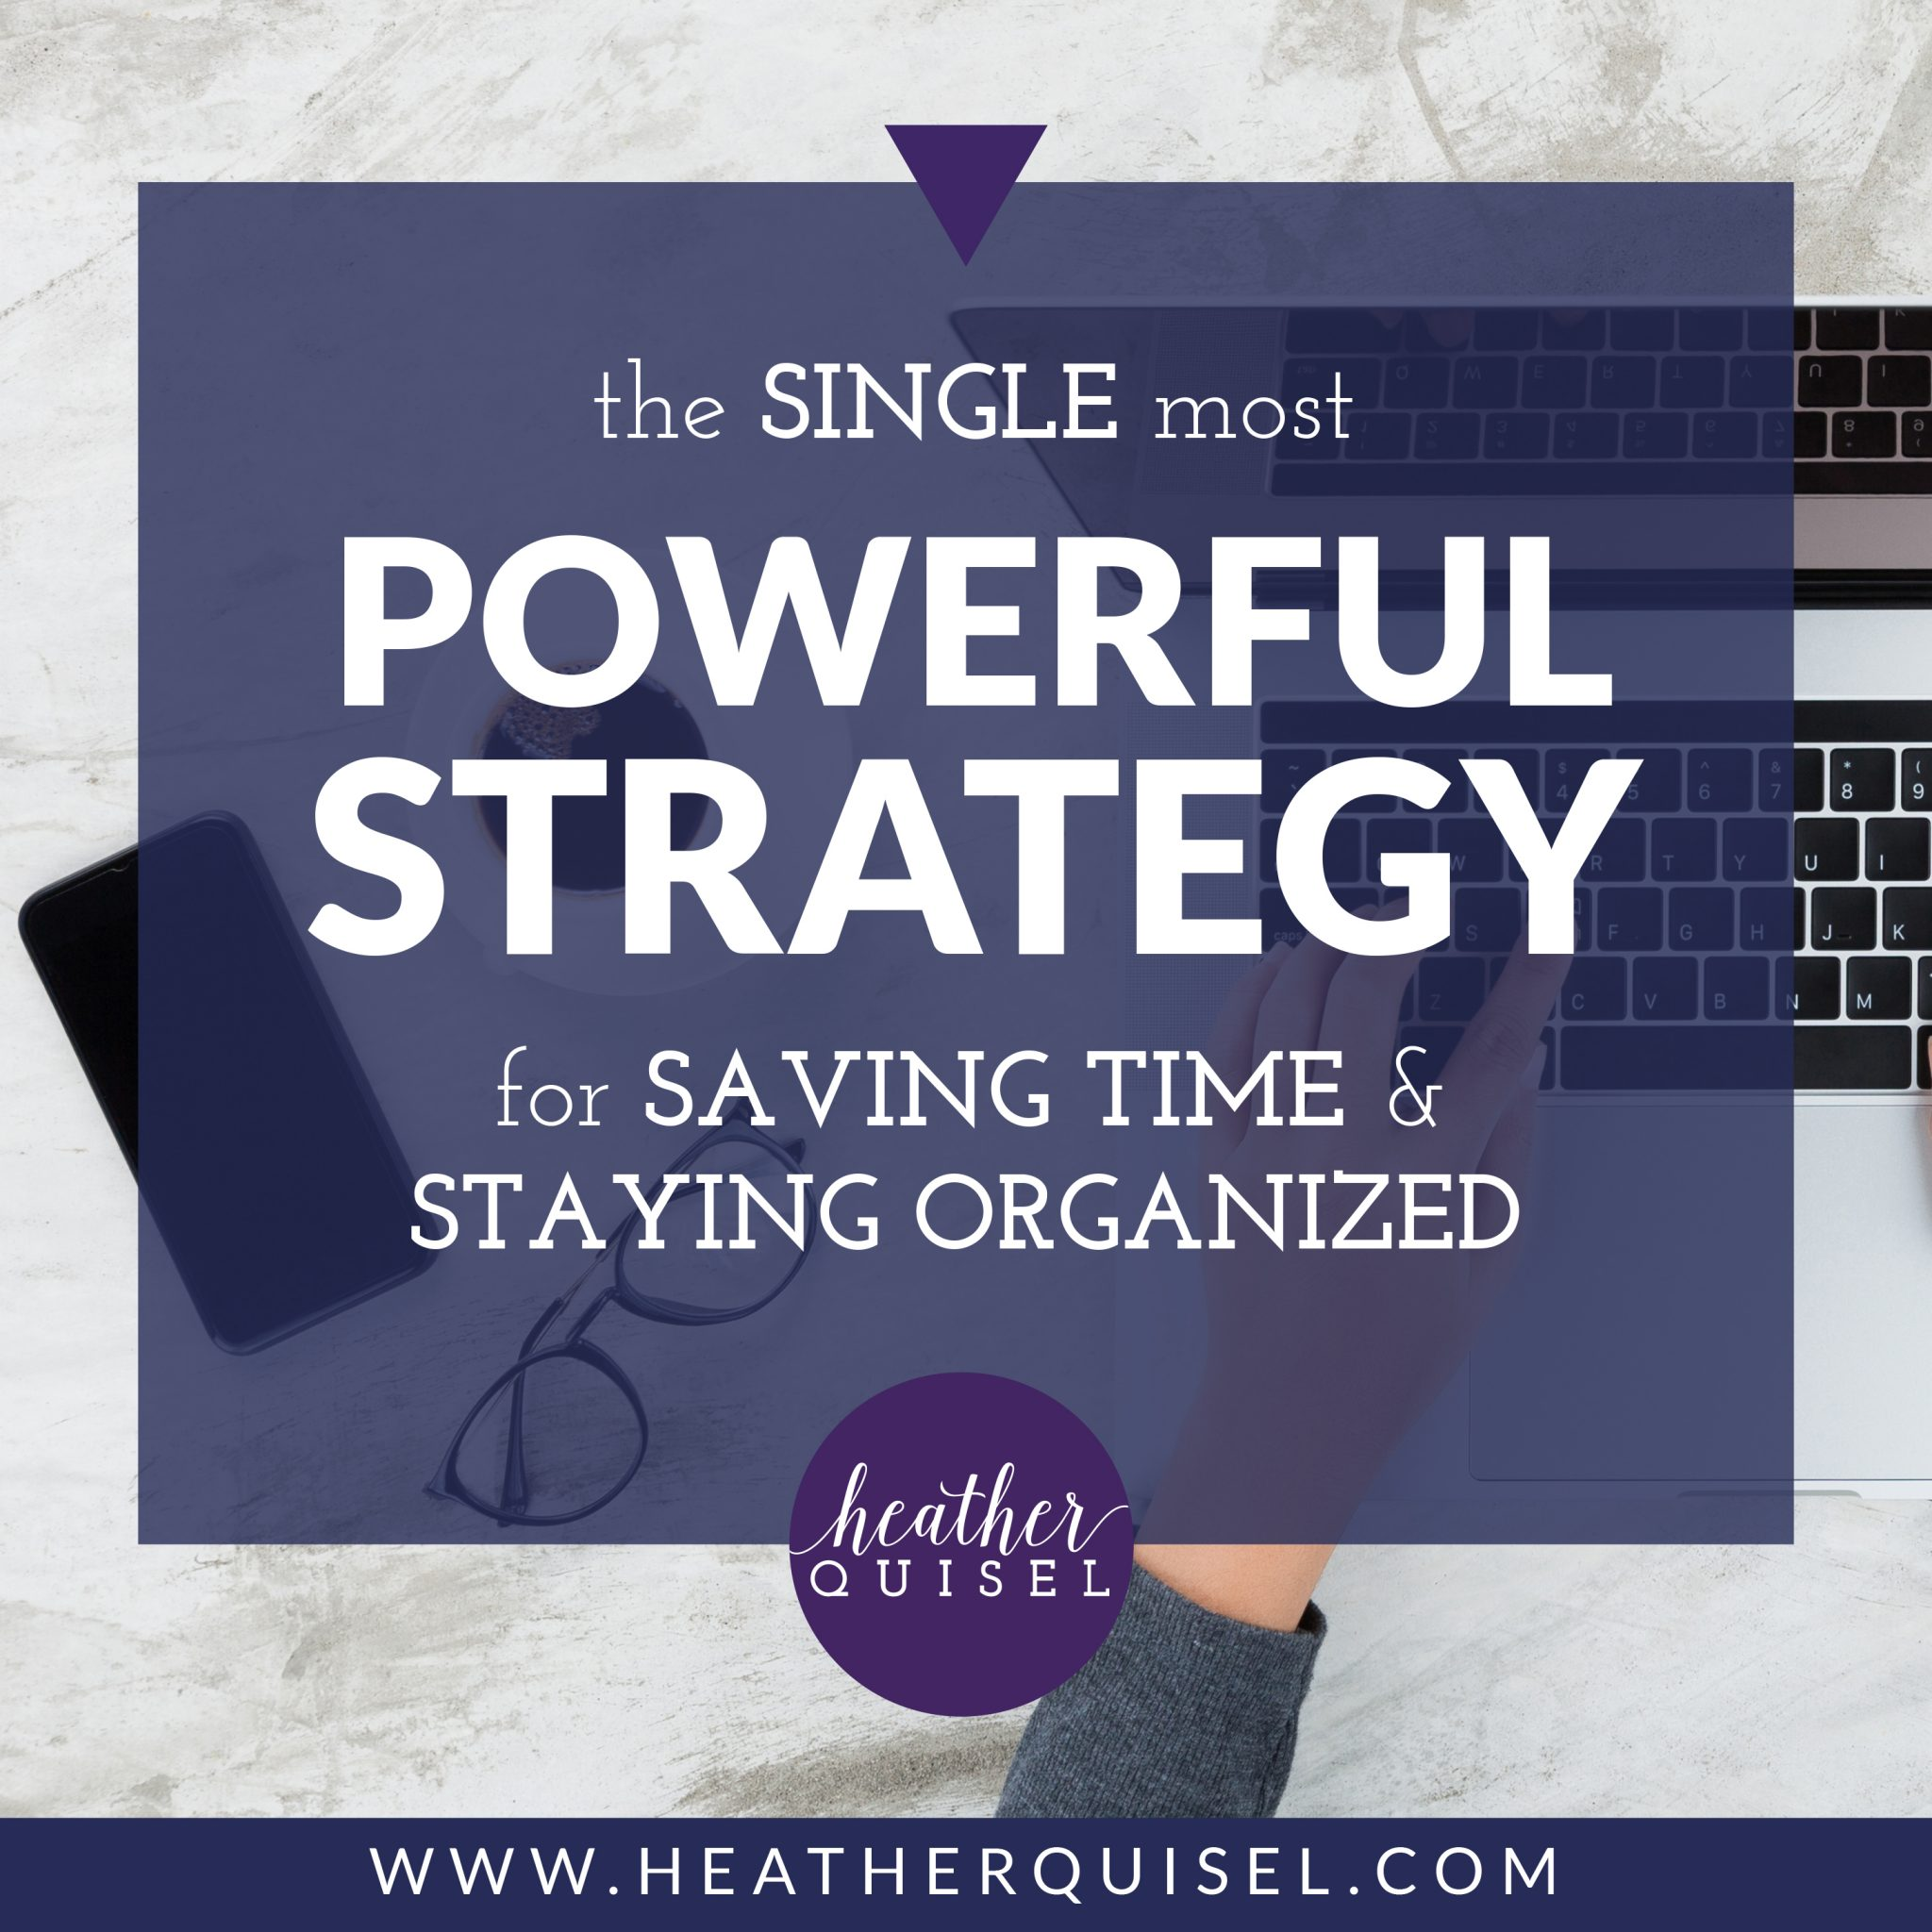 The Single Most Powerful Strategy for Saving Time and Staying Organized